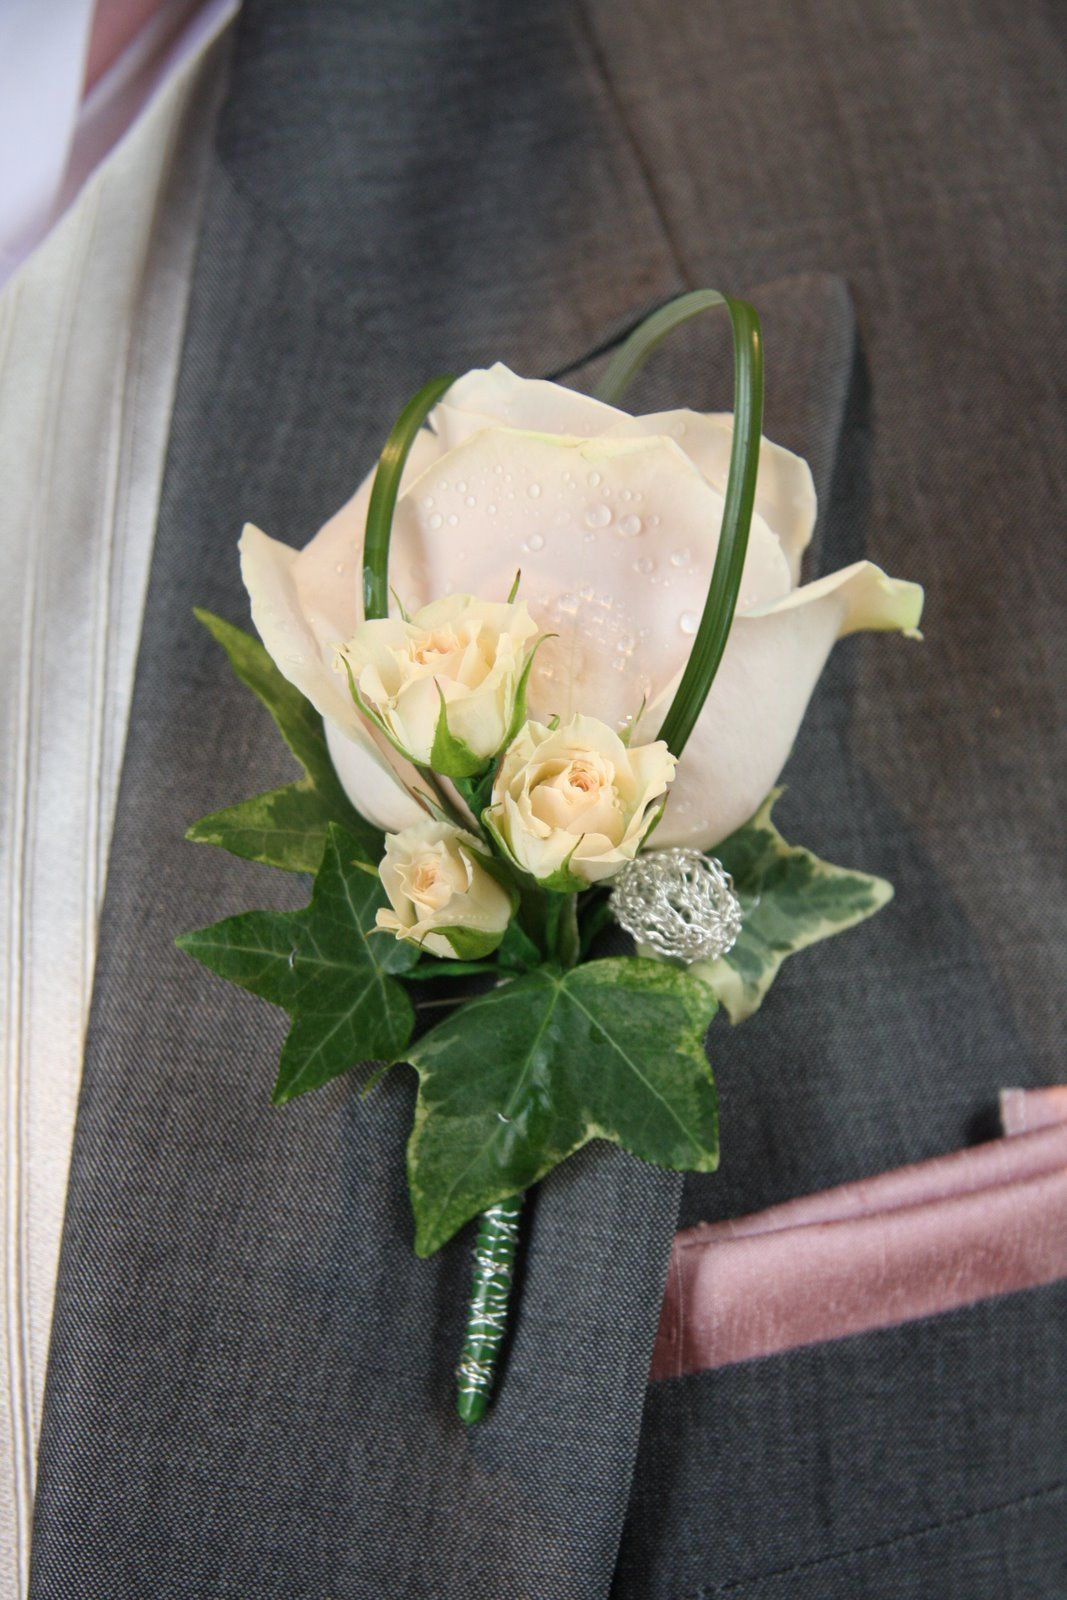 Ansteckblume Hochzeit Boutonniere Design Buttonhole And Corsage Blog Groom